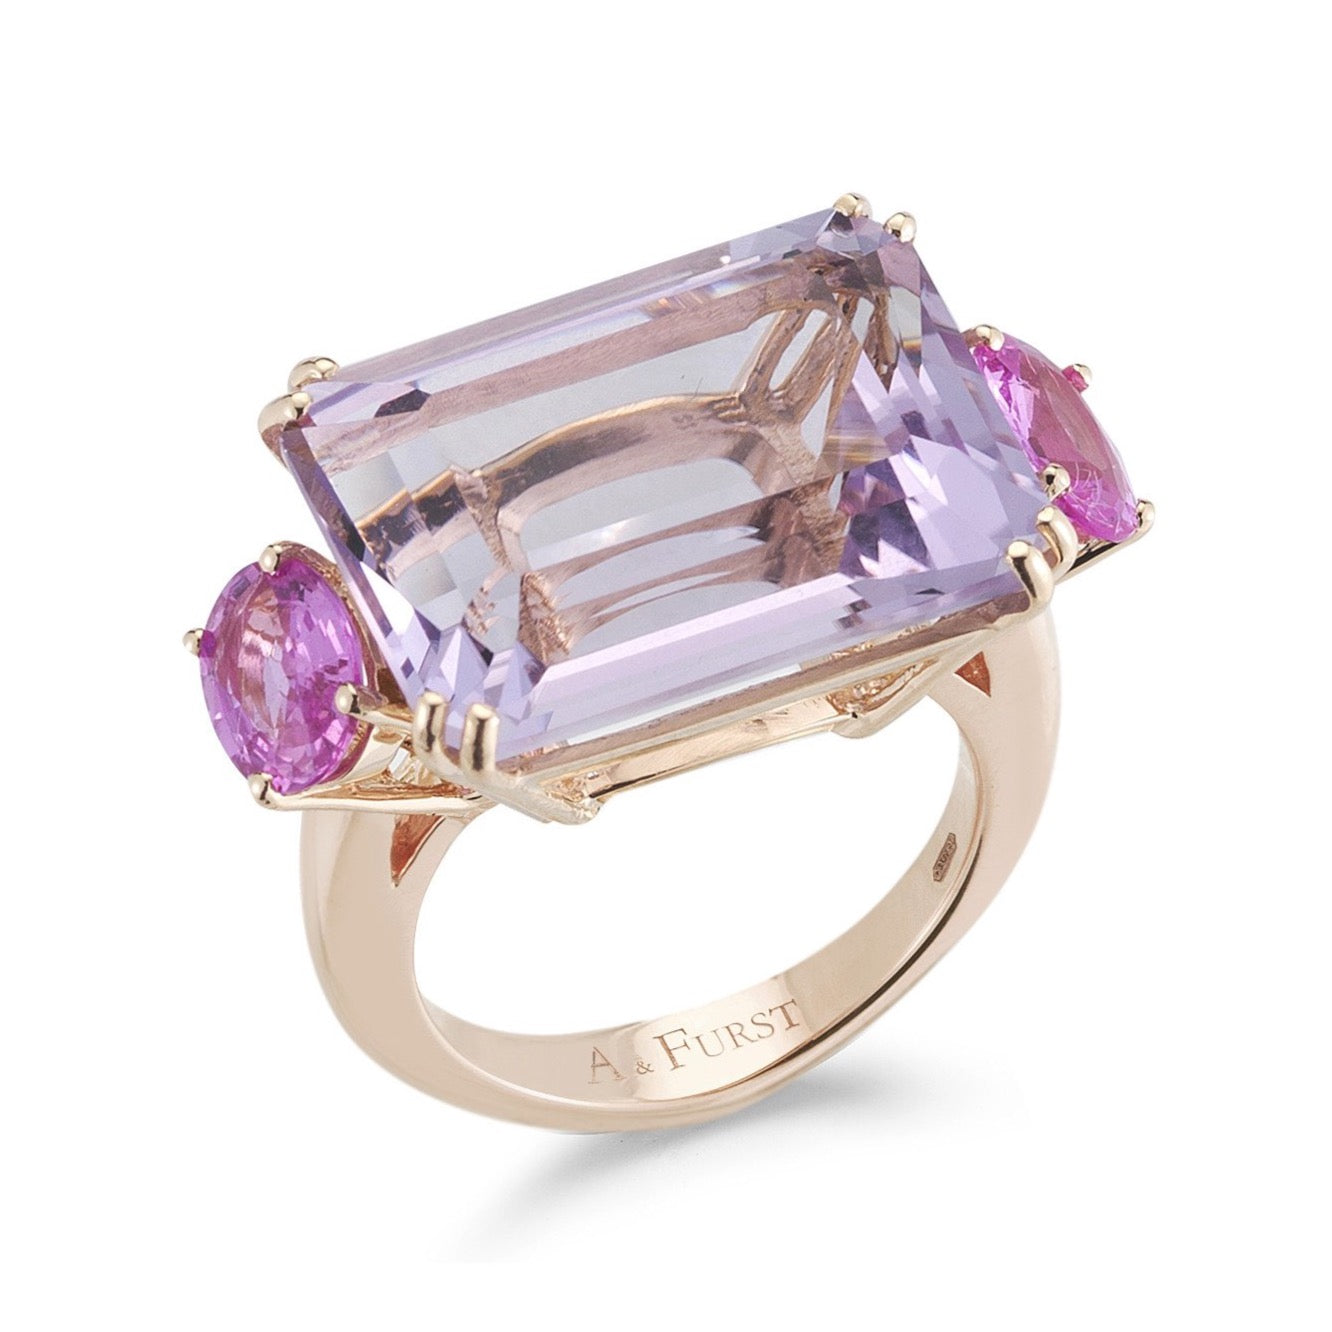 "A & Furst ""Party"" Cocktail Ring with Rose de France and Pink Sapphires,18k Rose Gold."